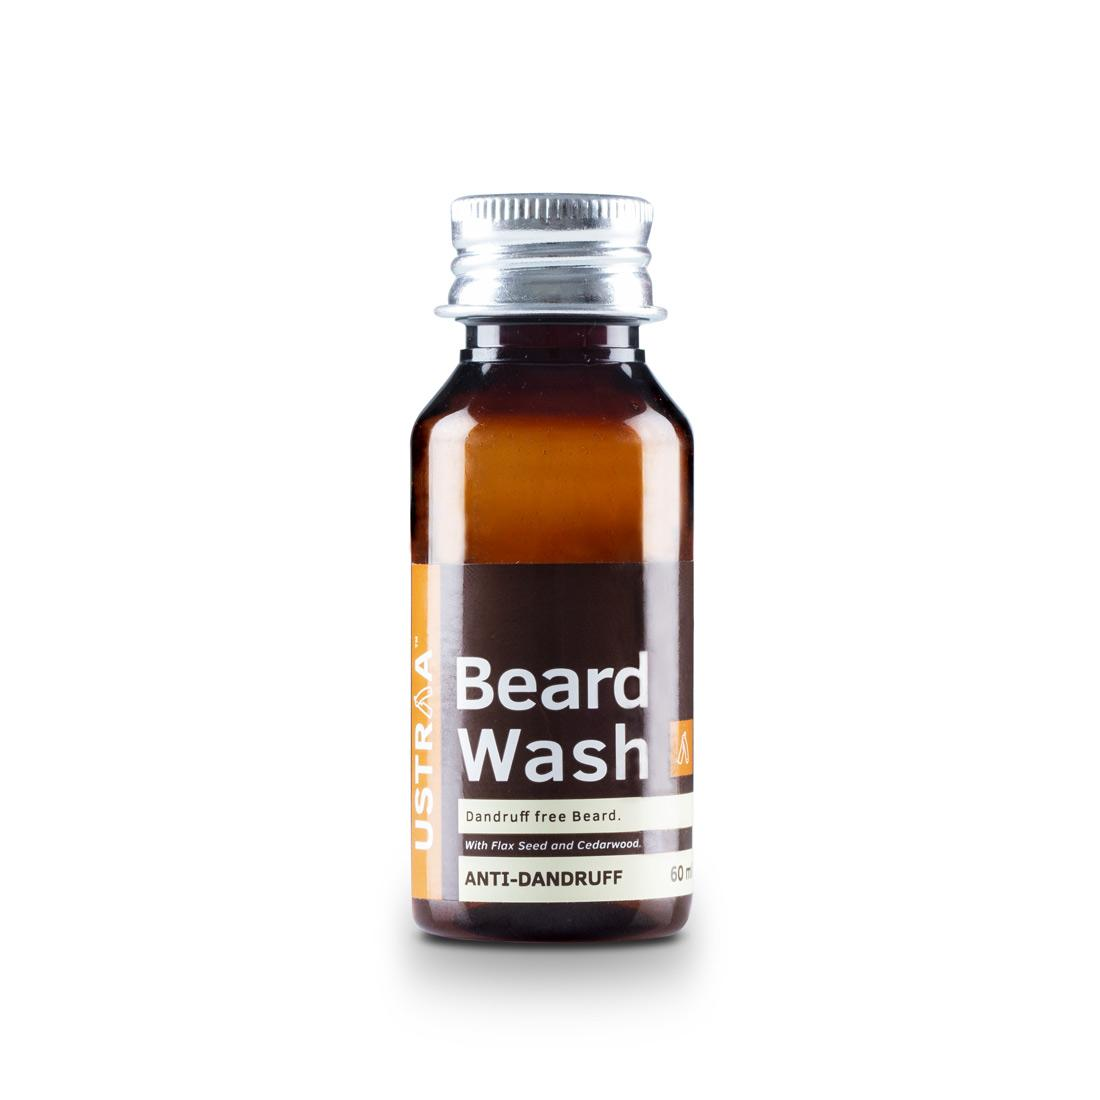 Ustraa Anti Dandruff Beard Wash 60 ml - An Easy to Wash Beard wash with Flax Seed Oil, Cedarwood Oil and Prickly Pear Cactus Extract to Prevent Post Wash Tanning